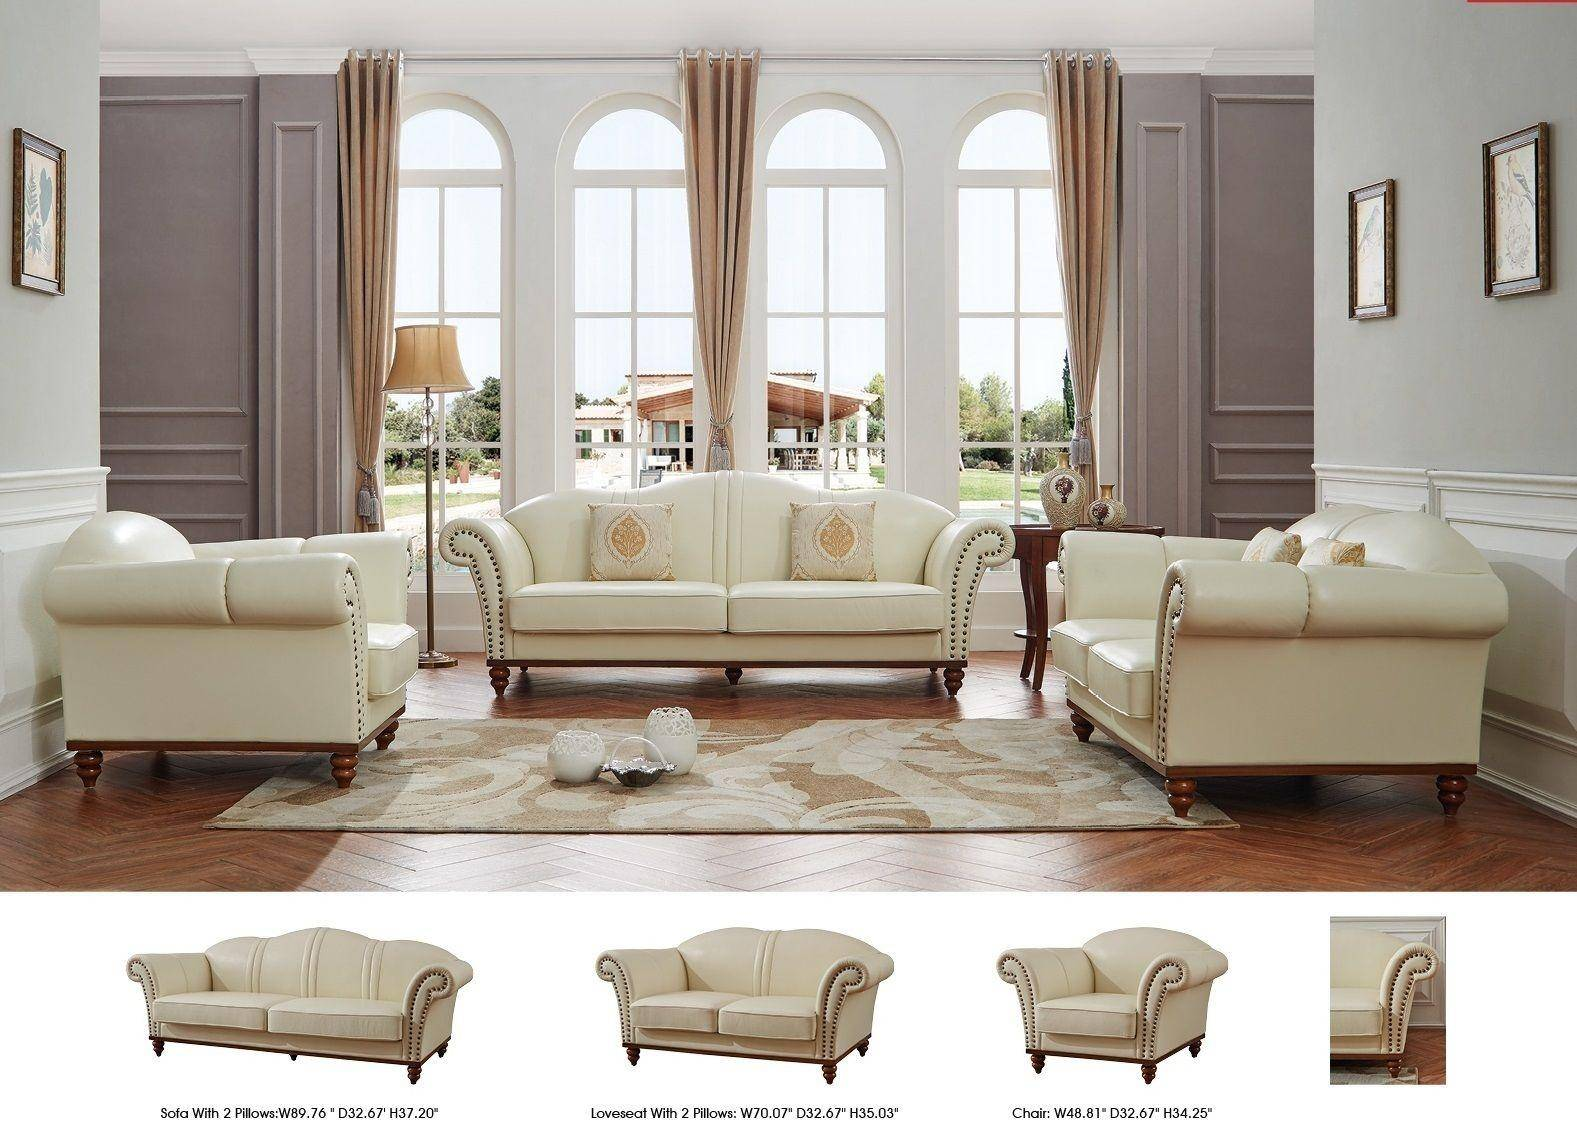 esf 2601 ivory italian leather living room sofa set 2pcs modern made rh nyfurnitureoutlets com